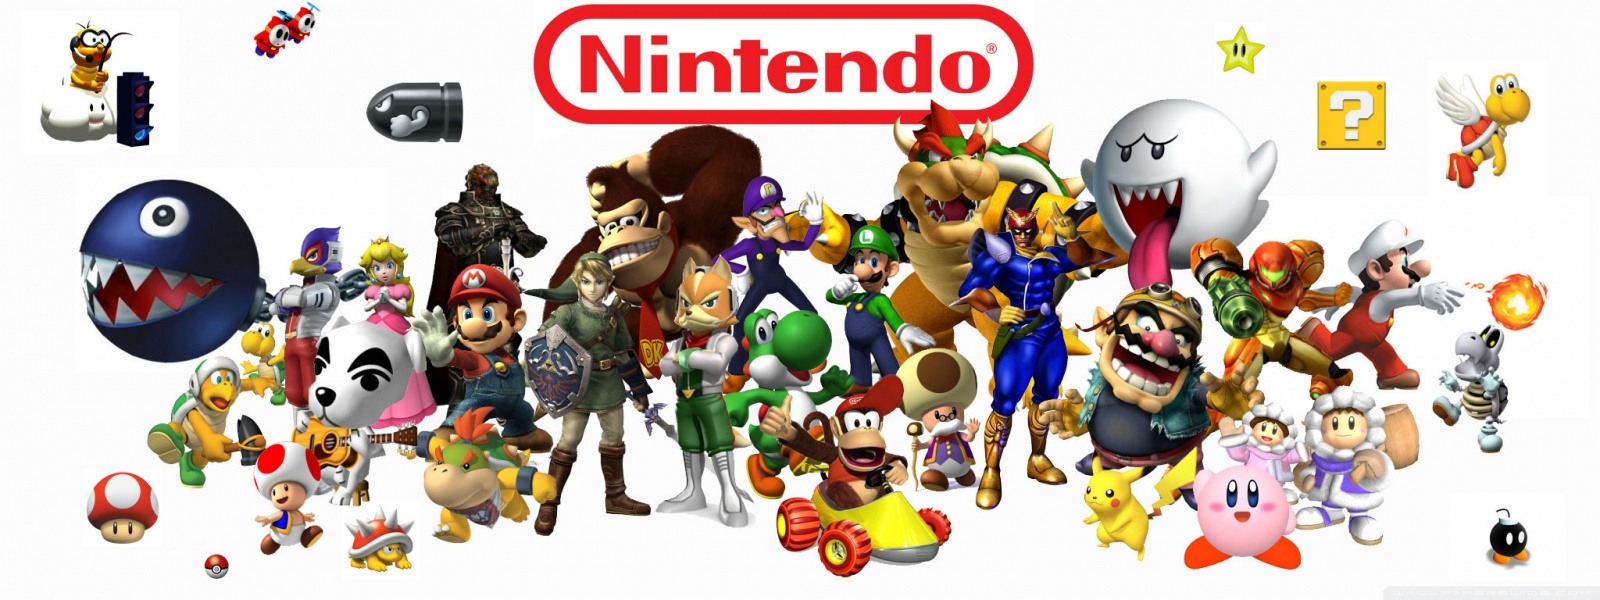 nintendo-wallpaper-1600x600